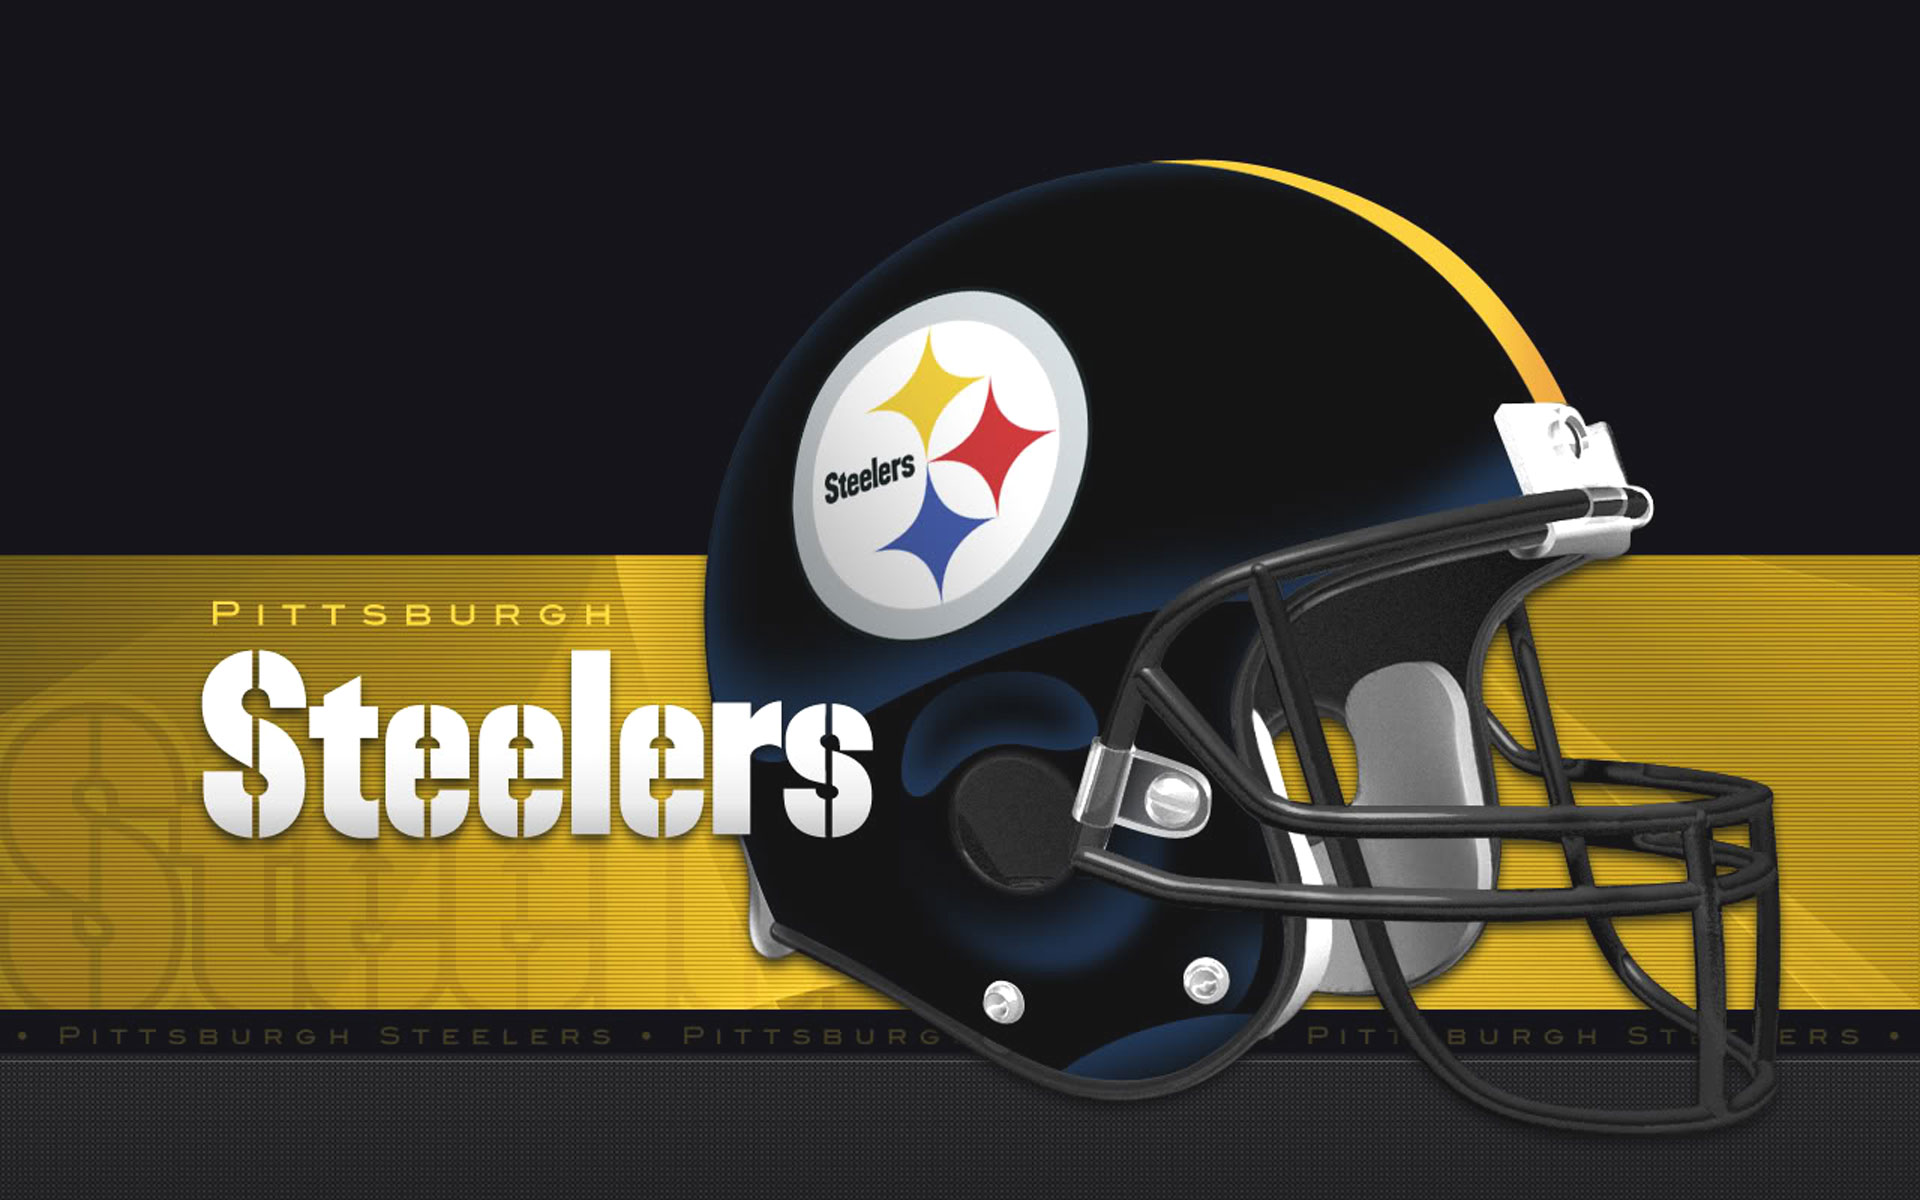 Pittsburgh Steelers wallpaper background image Pittsburgh 1920x1200